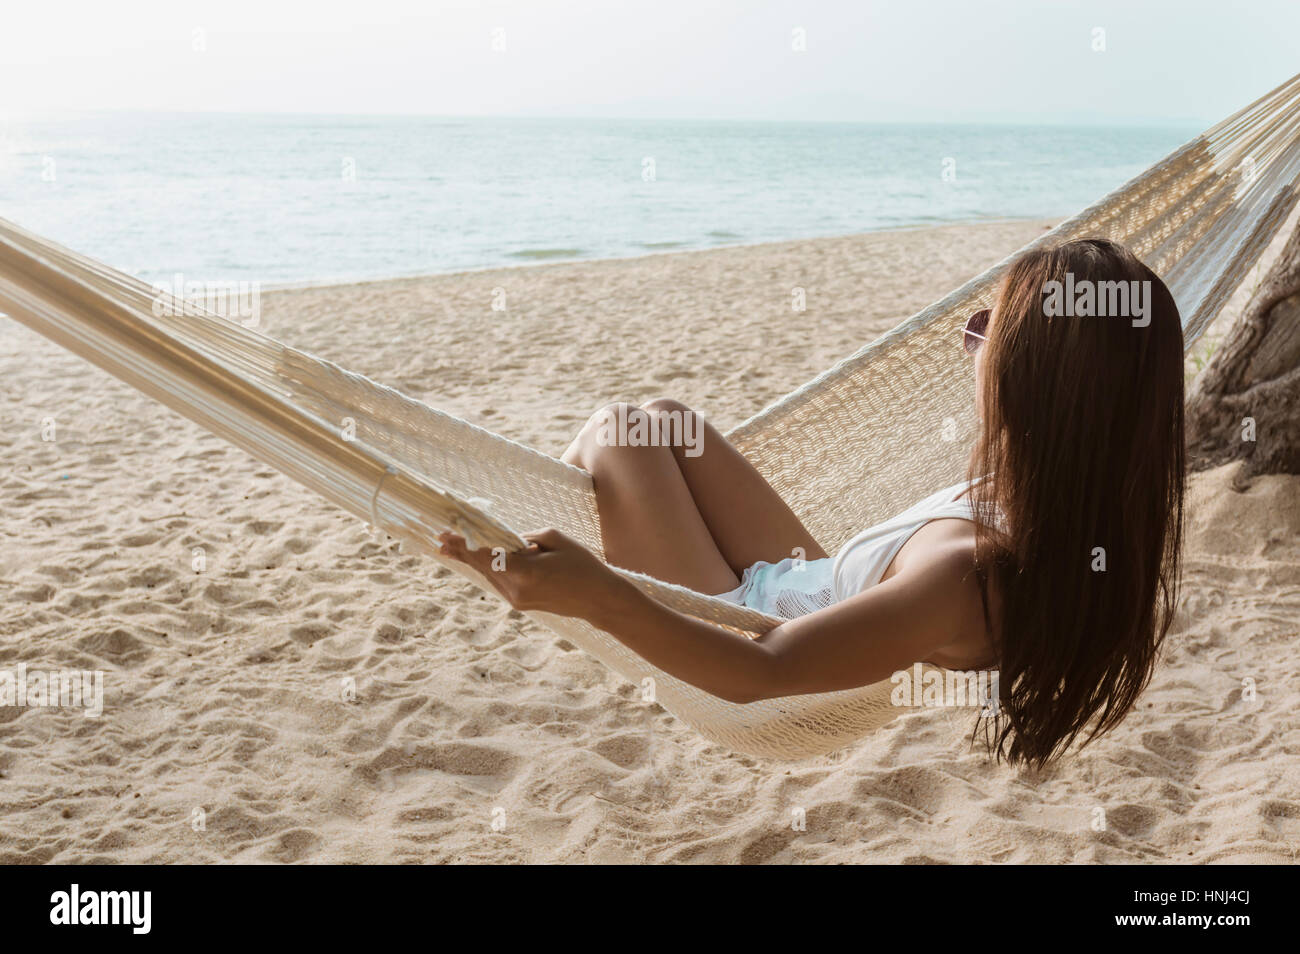 Woman relaxing on hammock at beach - Stock Image